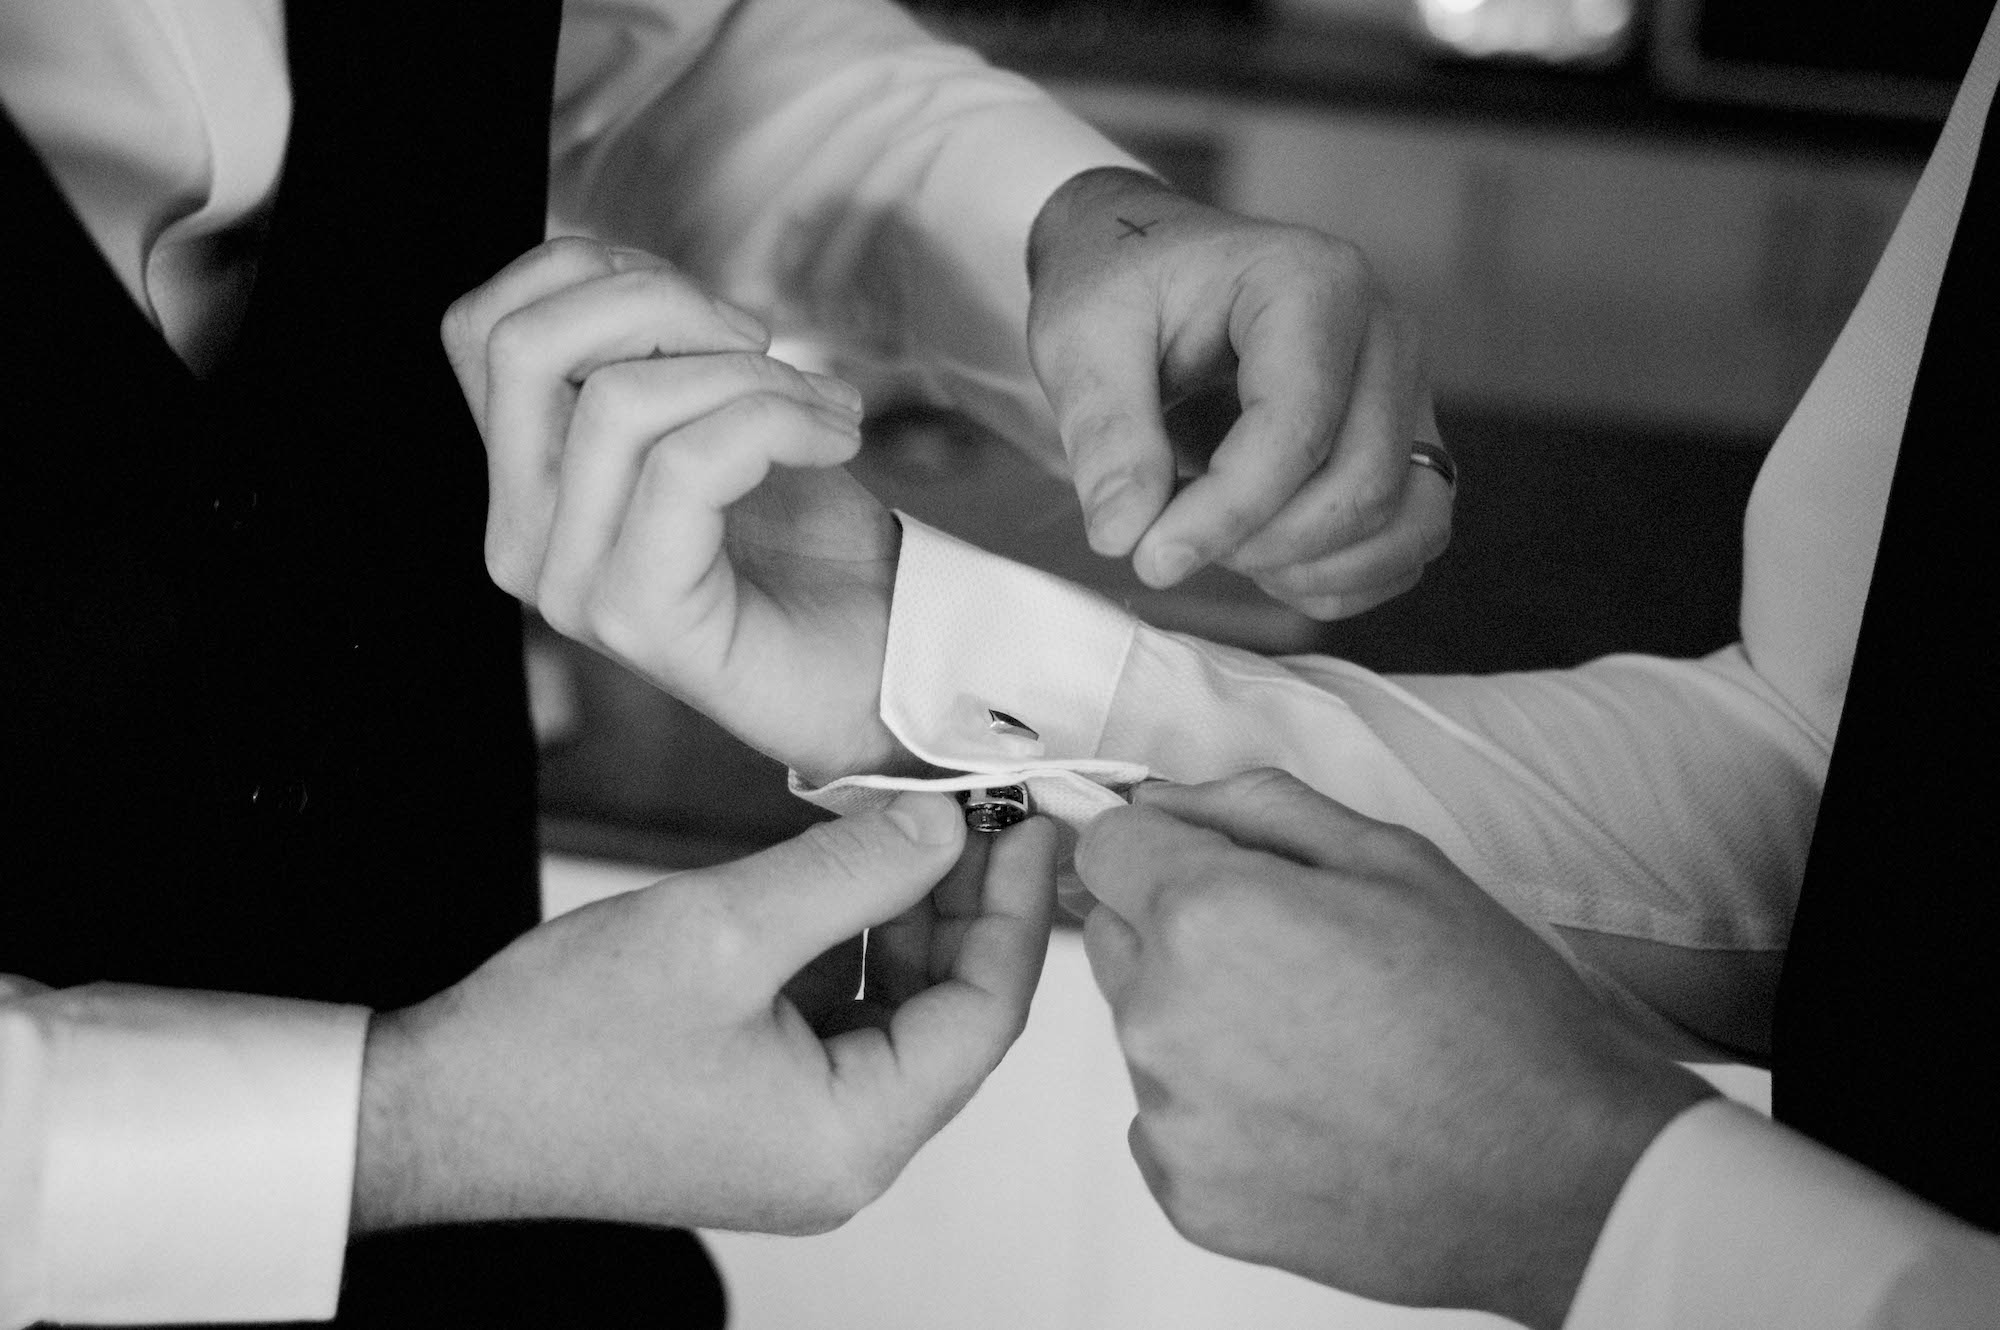 A detail of the groomsmen helping the groom with his cufflinks.